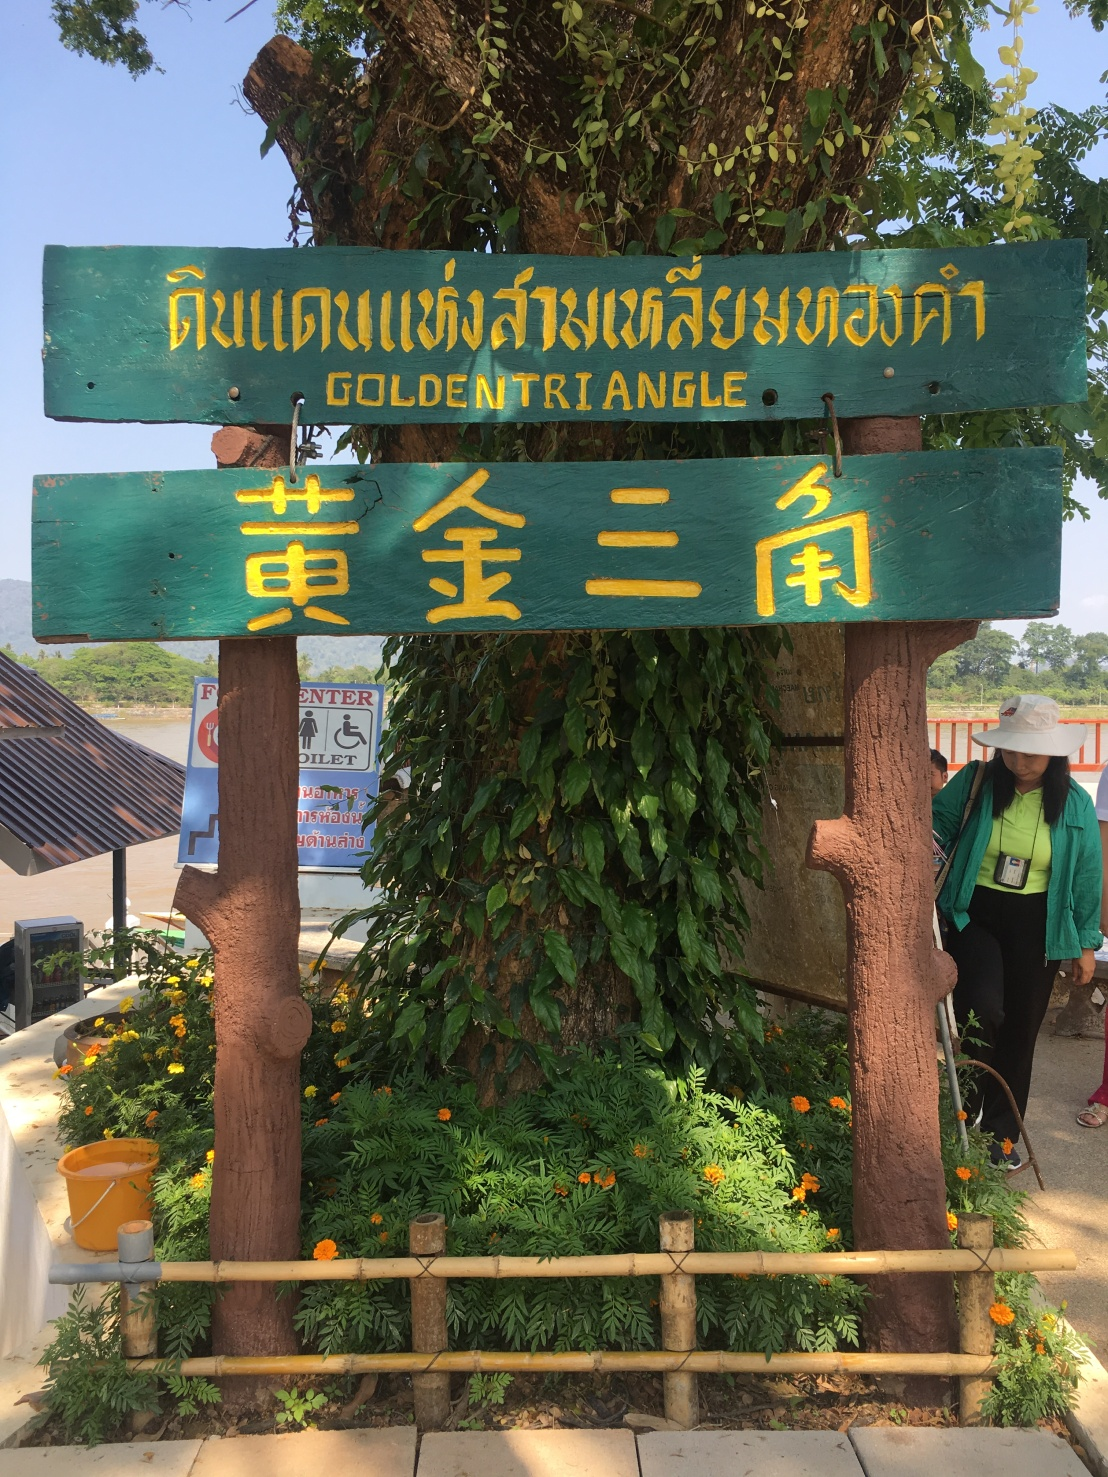 Thawee Hot Springs:White Temple:Wat Chedi Luang:Golden Triangle 92